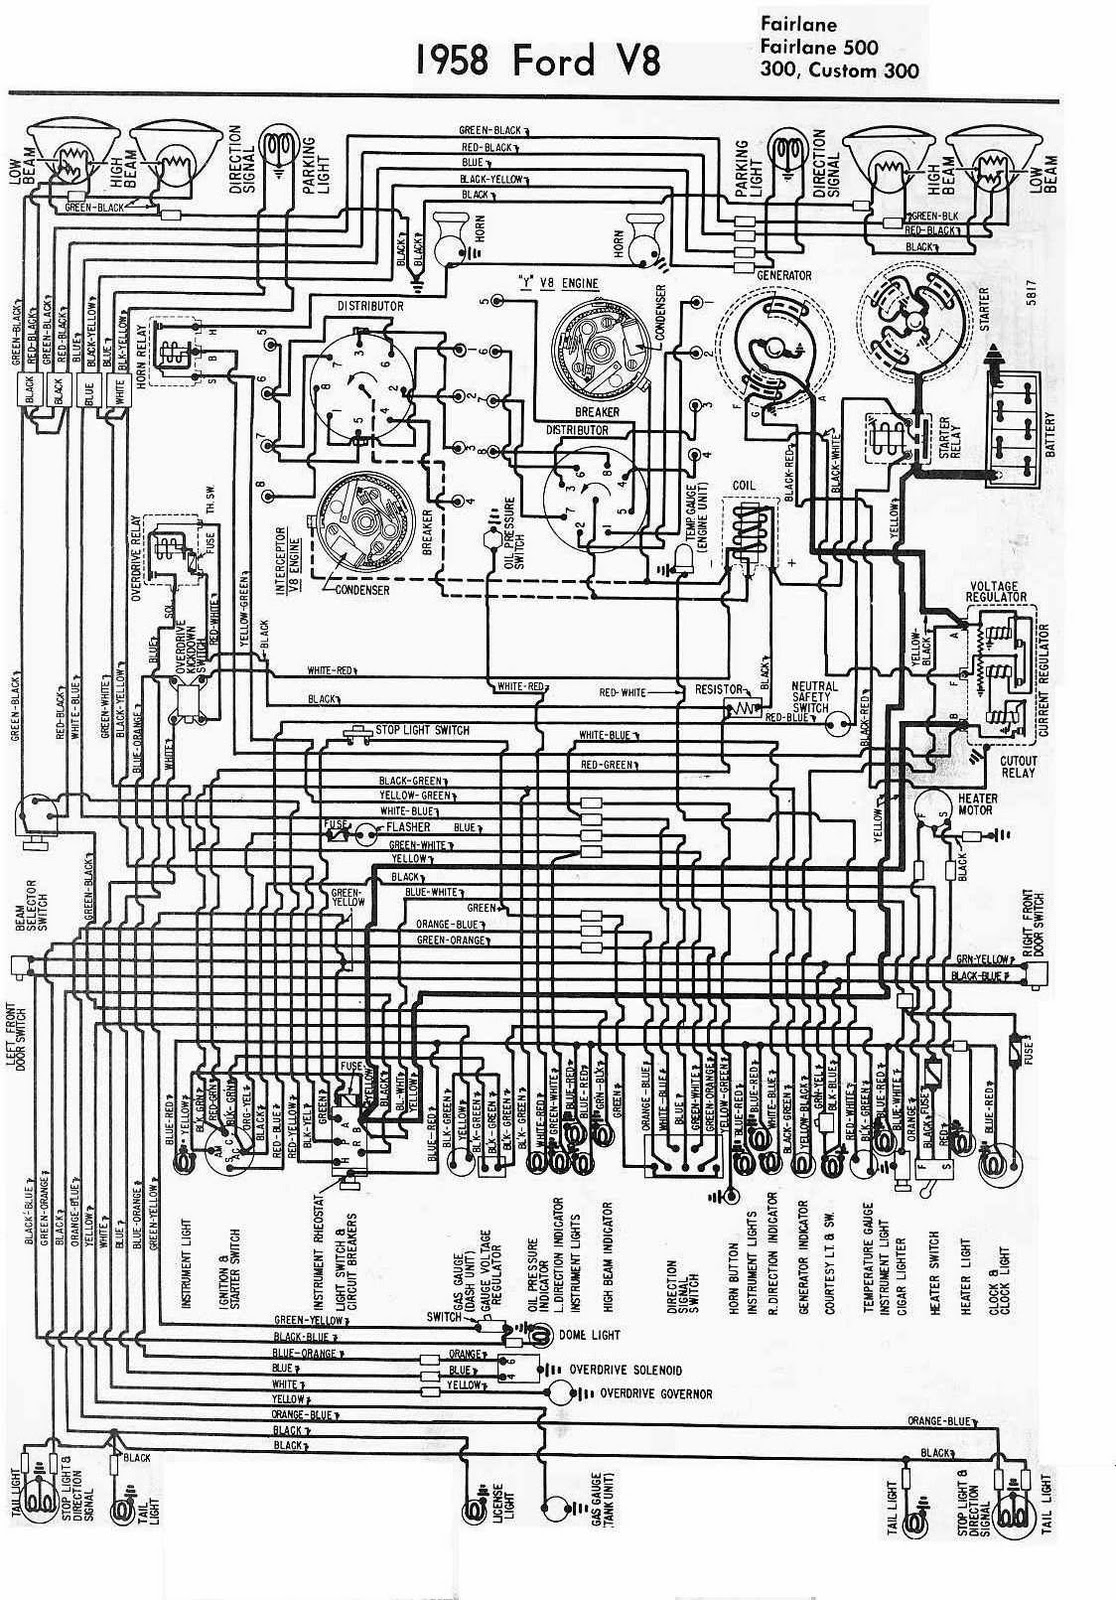 Electrical Wiring Diagram For Ford V on 1956 ford f100 wiring diagram